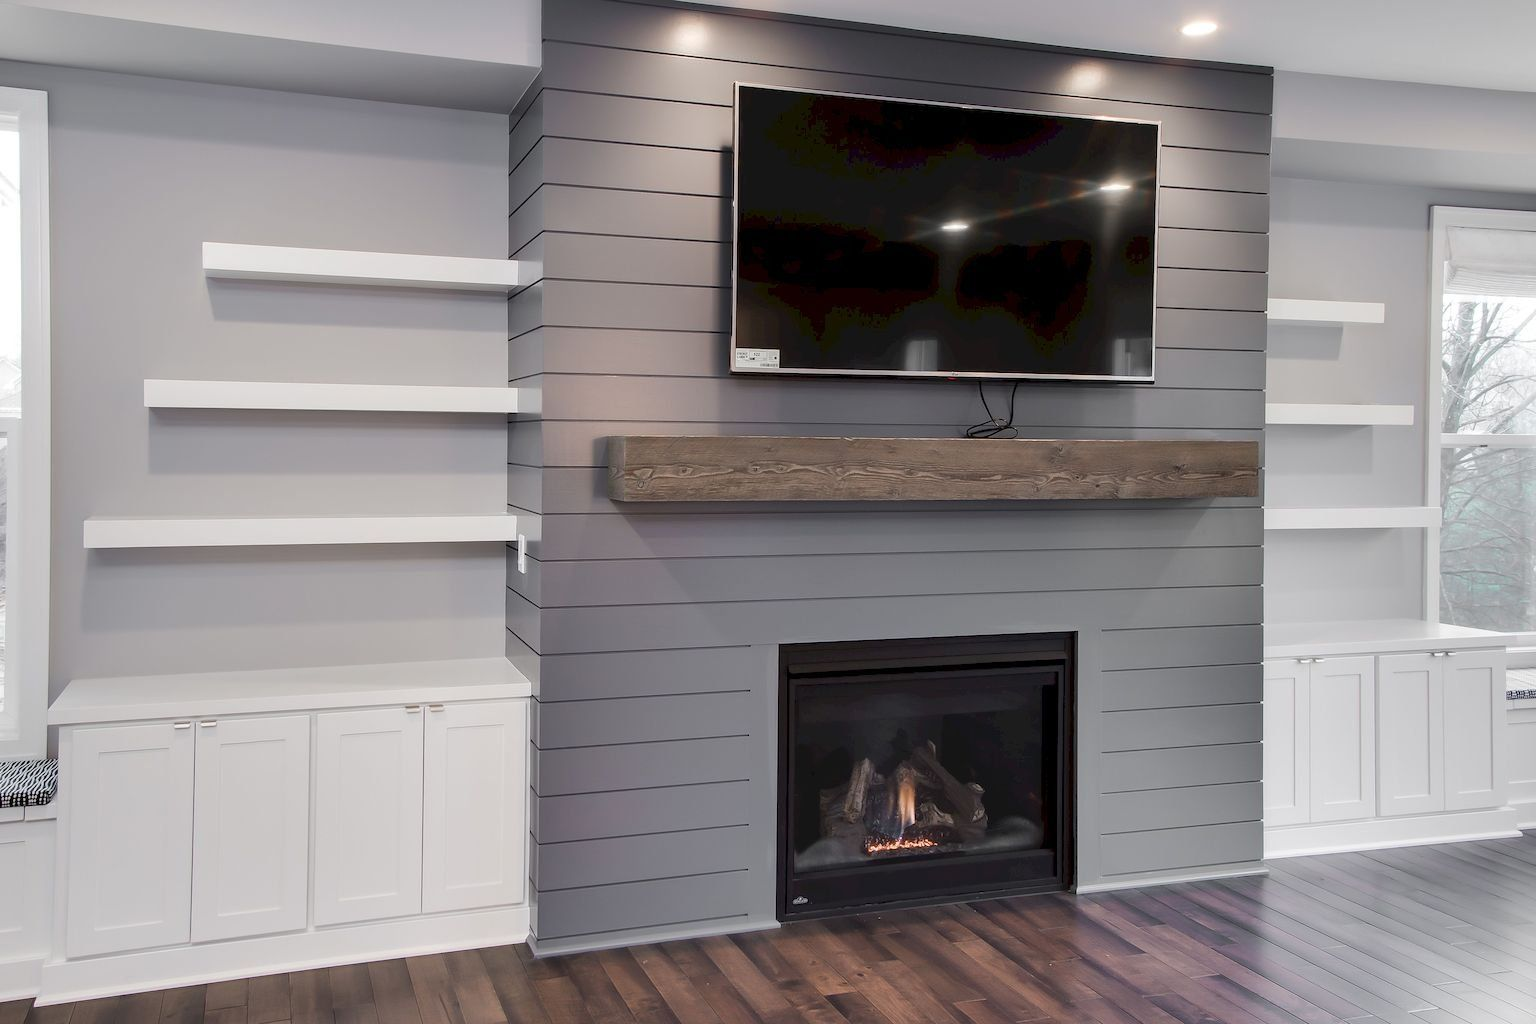 60 Brilliant Floating Shelves Design For Living Room Ideas Fireplace Surrounds White Shiplap Wall Home Fireplace